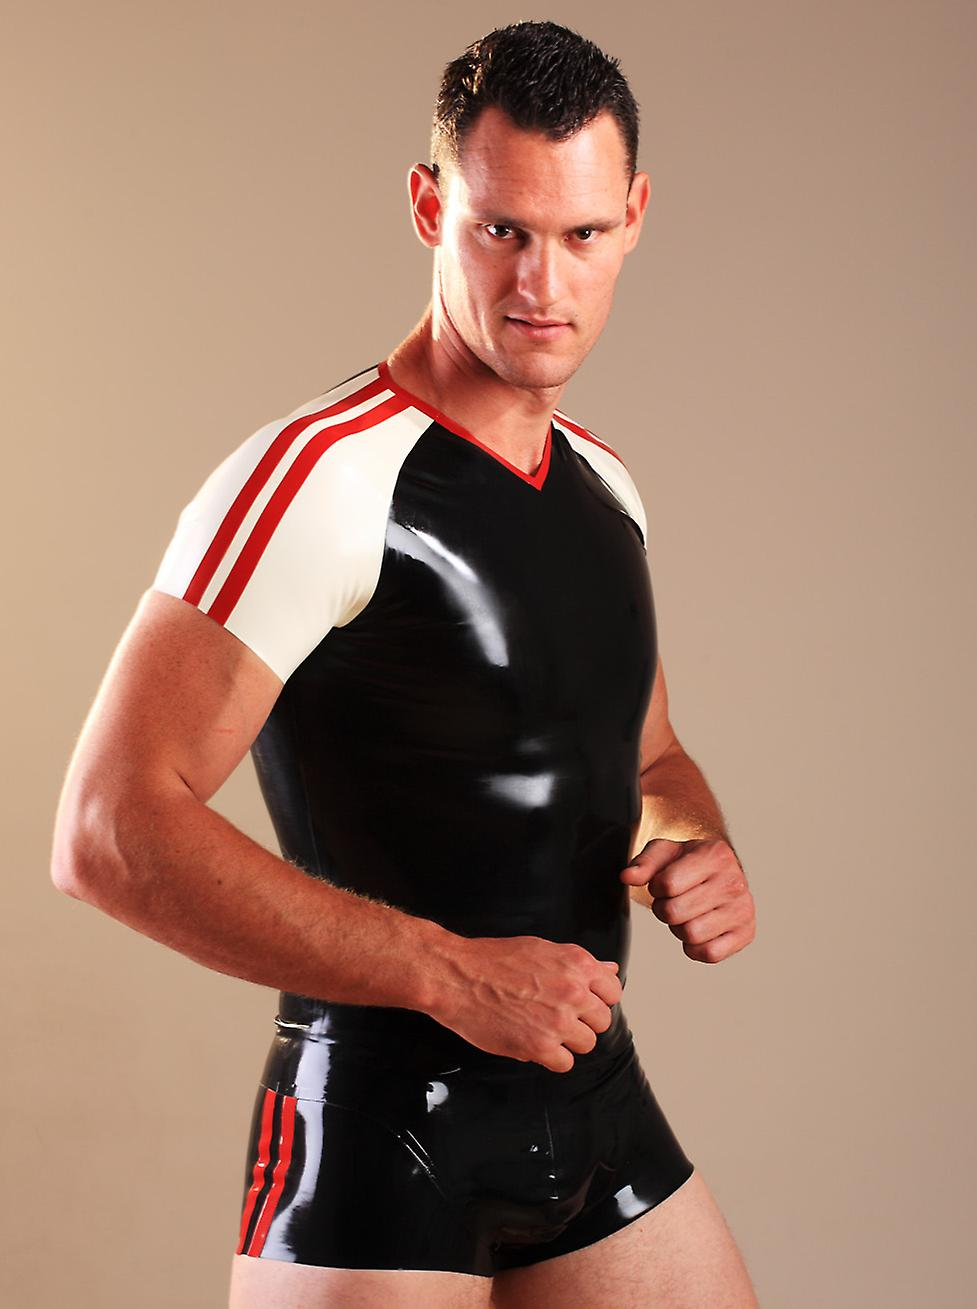 Honour Men's Sexy Tight Hipster Shorts in Fetish Rubber Kinky Lingerie